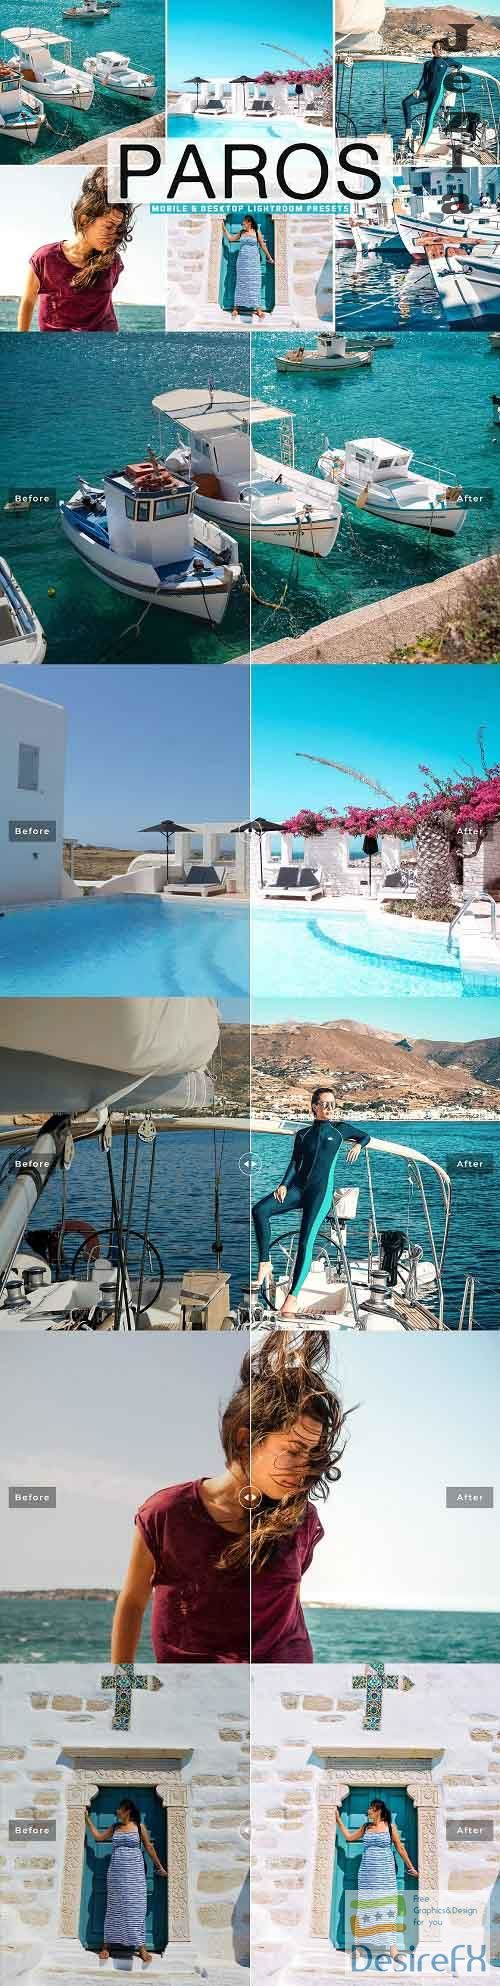 Paros Pro Lightroom Presets - 5798996 - Mobile & Desktop